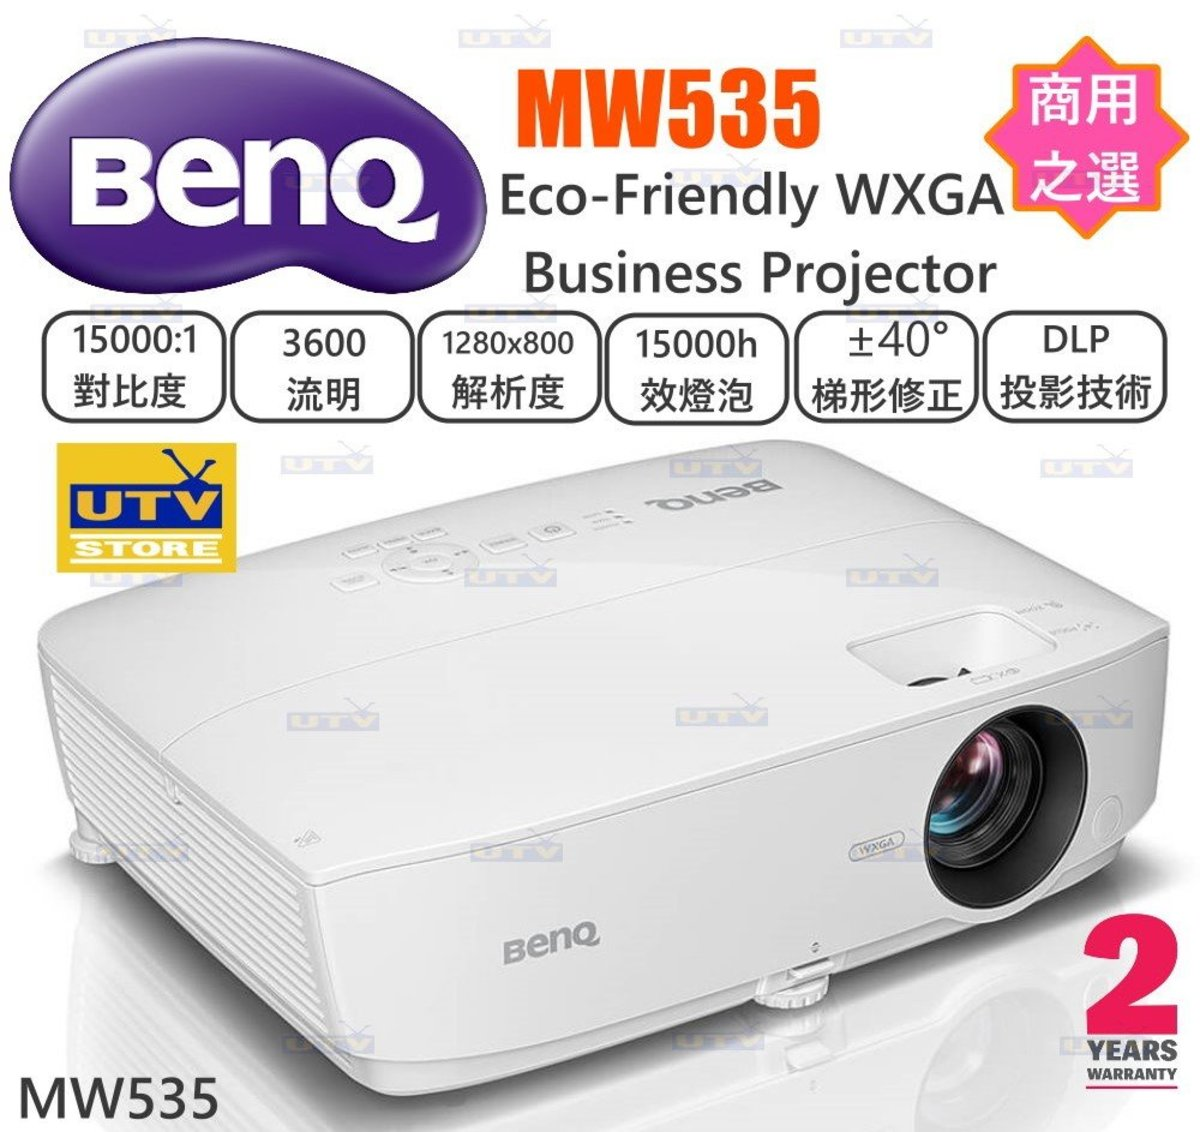 MW535 Eco-Friendly WXGA Business Projector